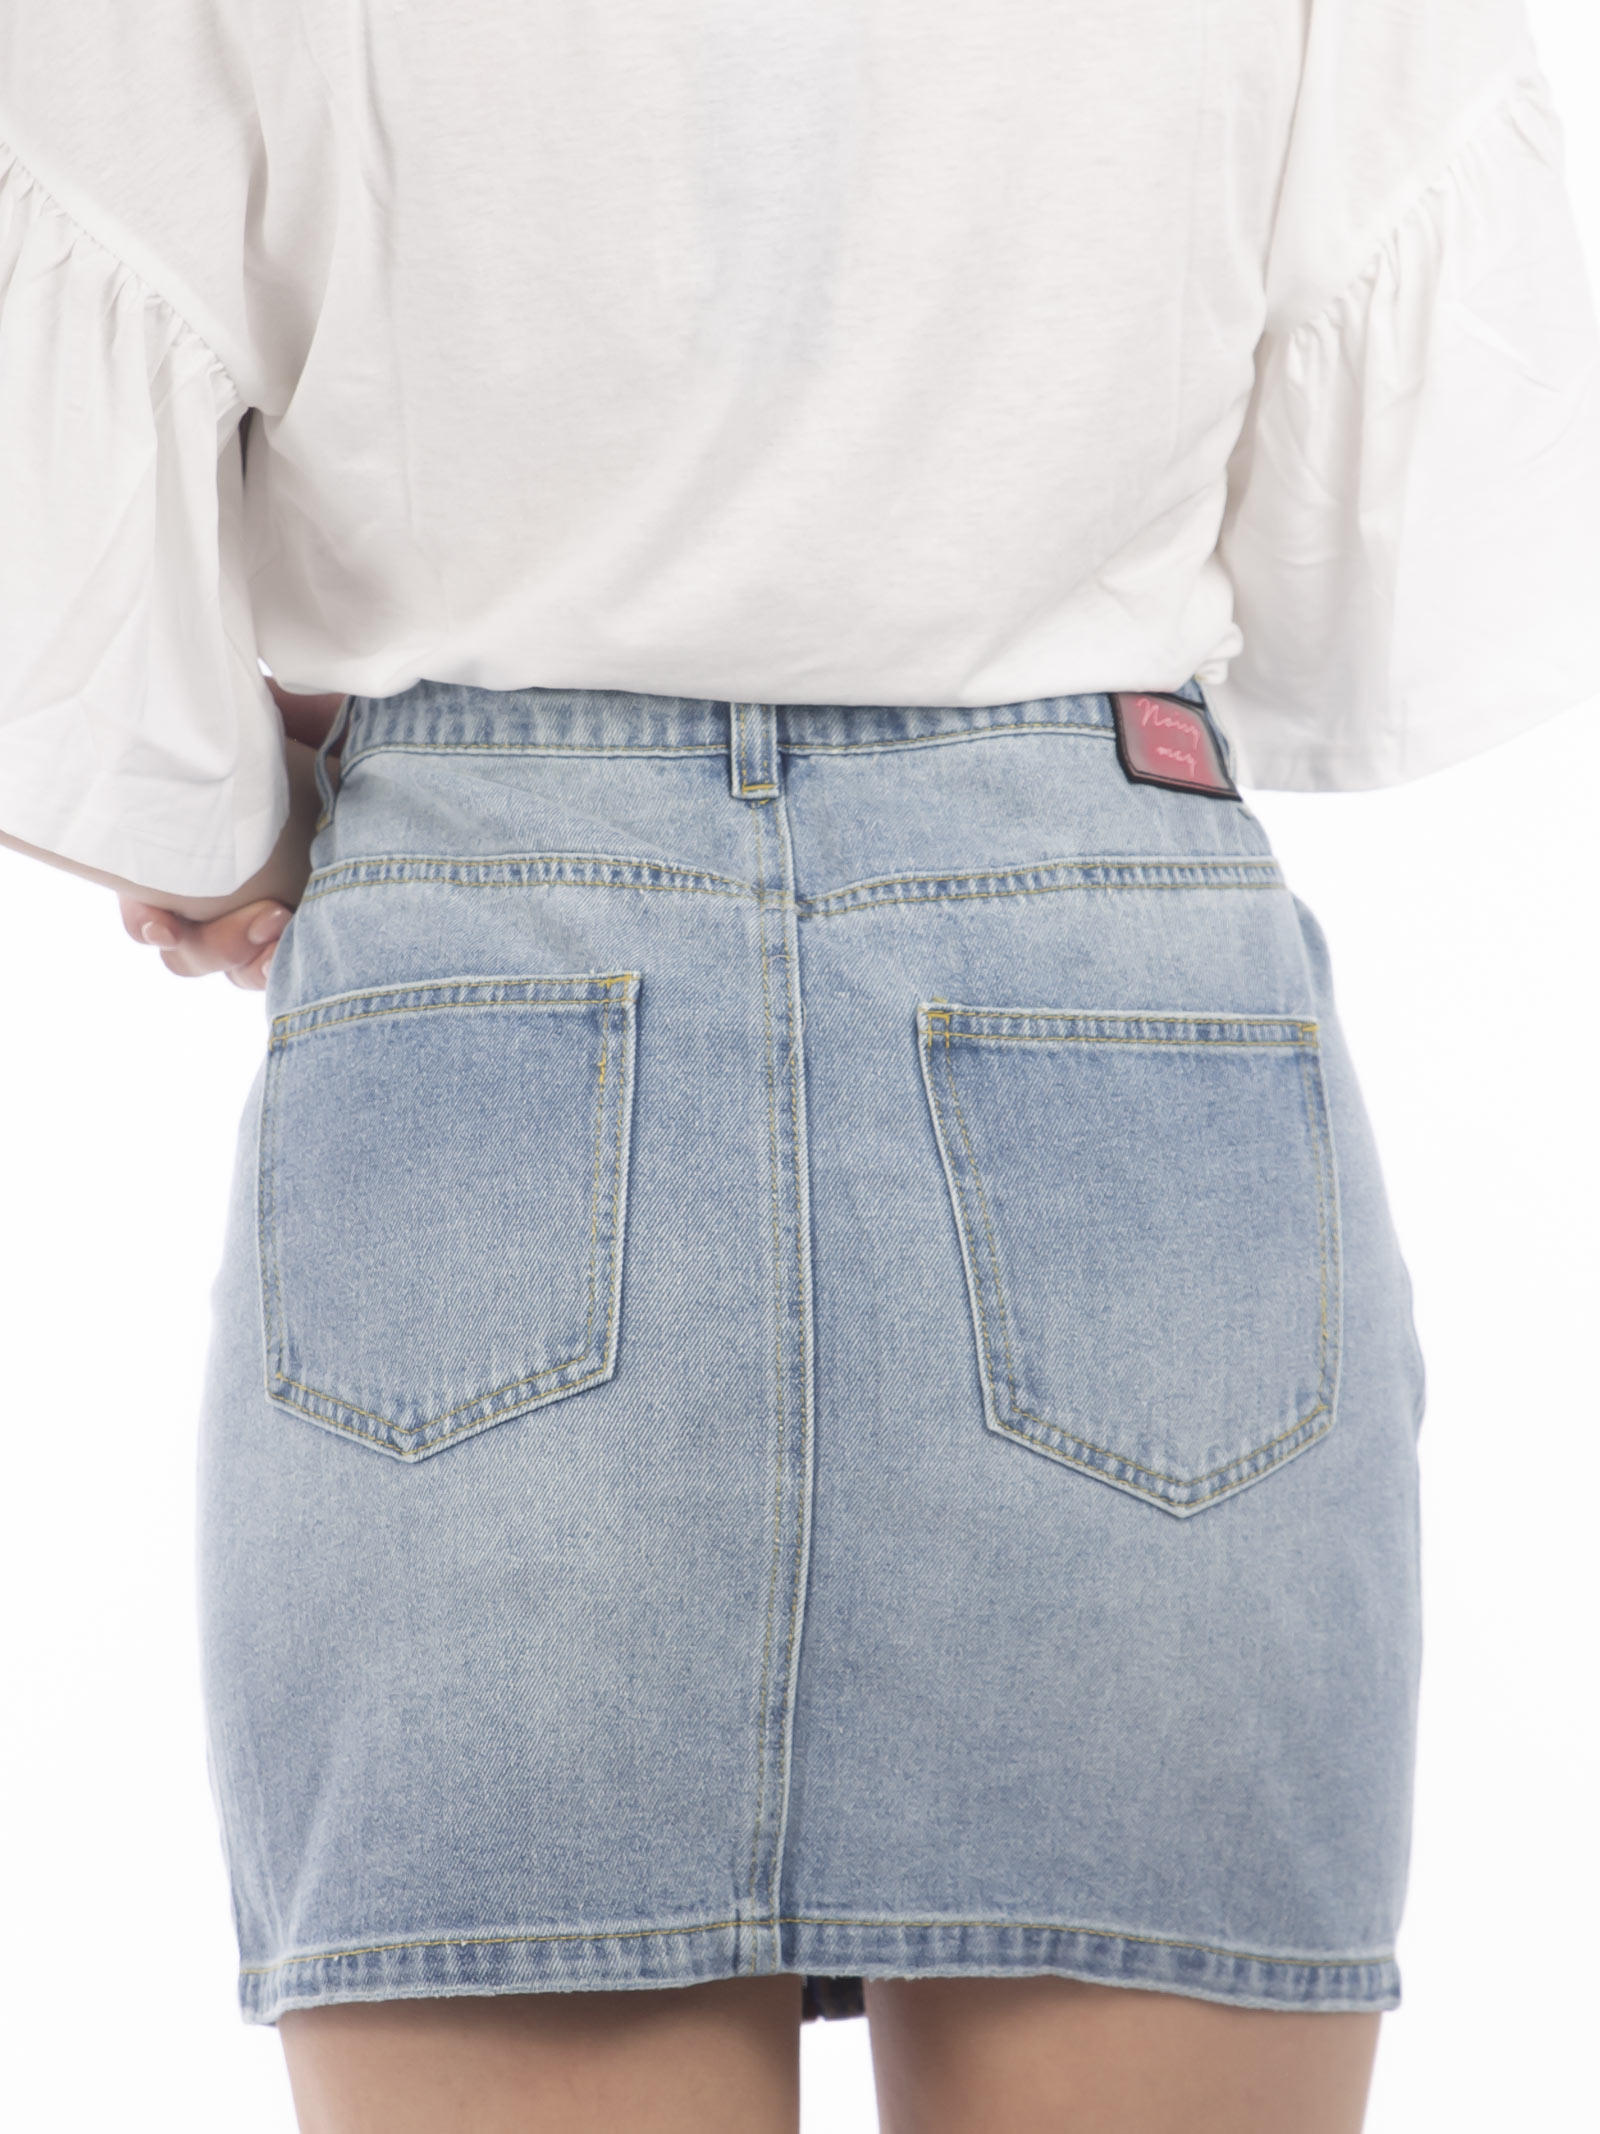 GONNA NOISY MAY | Gonne | 27011111JEANS